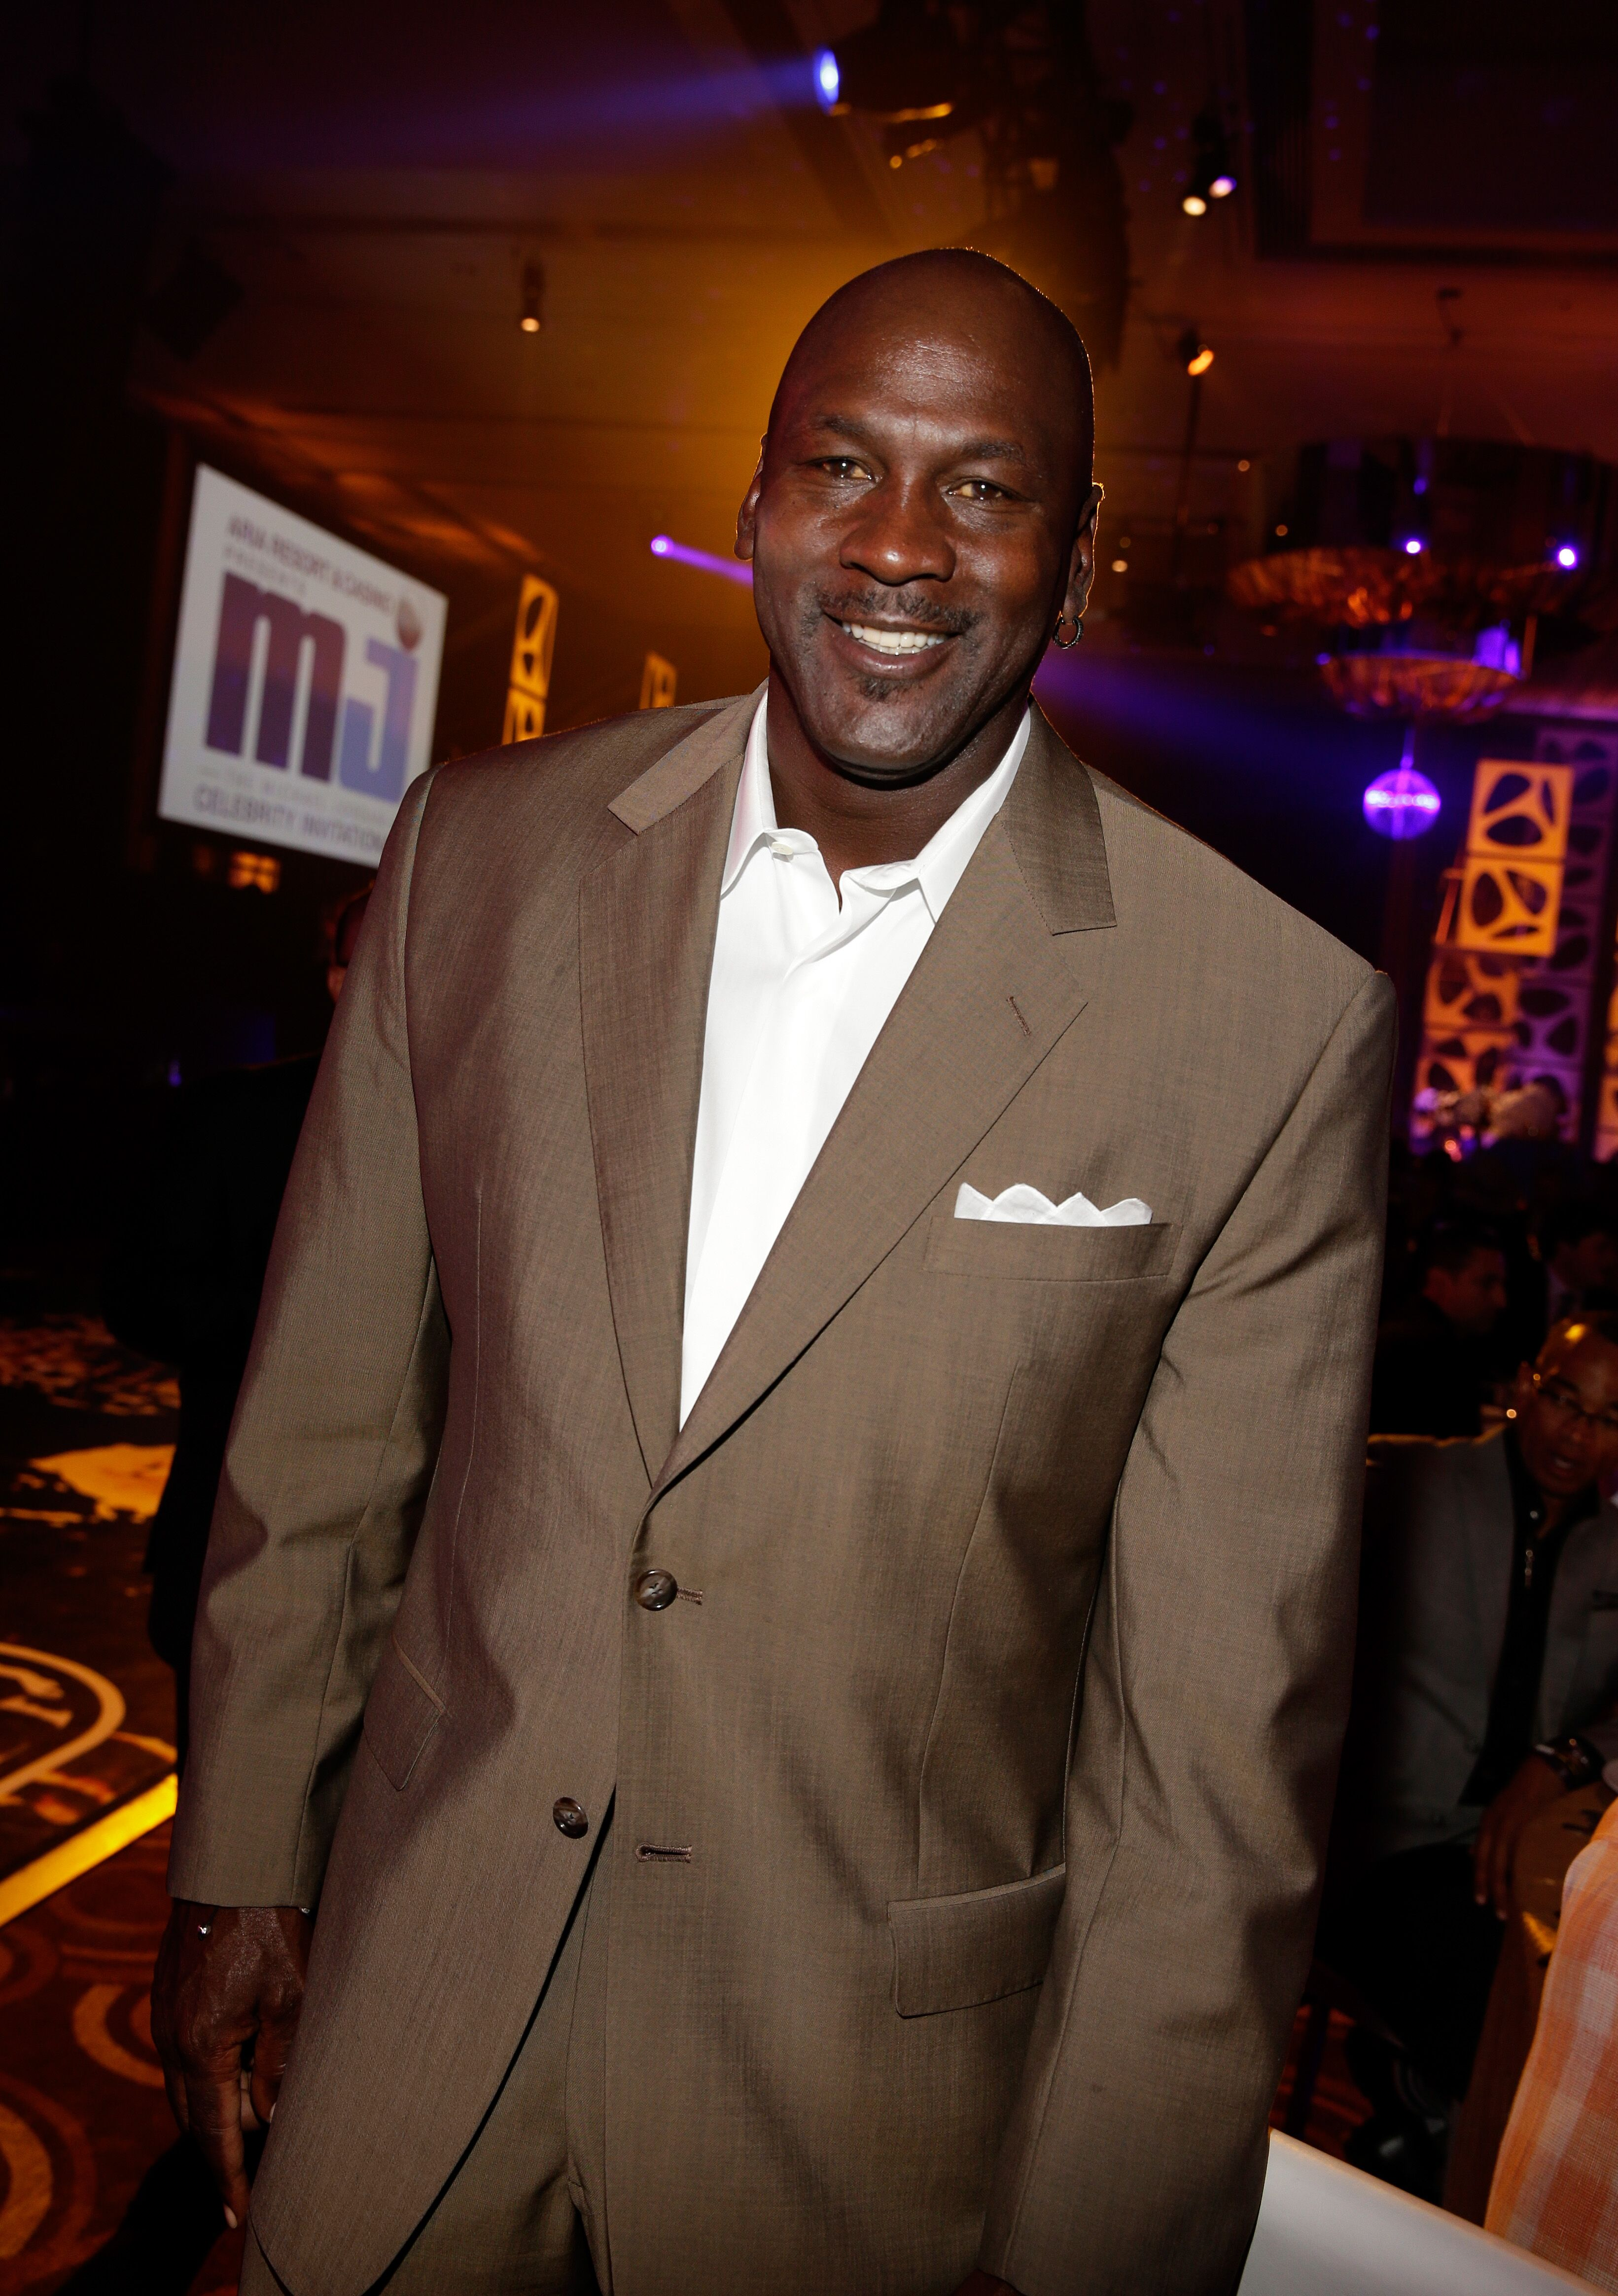 Michael Jordan attends the 13th annual Michael Jordan Celebrity Invitational gala at the ARIA Resort & Casino at CityCenter on April 4, 2014 in Las Vegas, Nevada | Photo: Getty Images